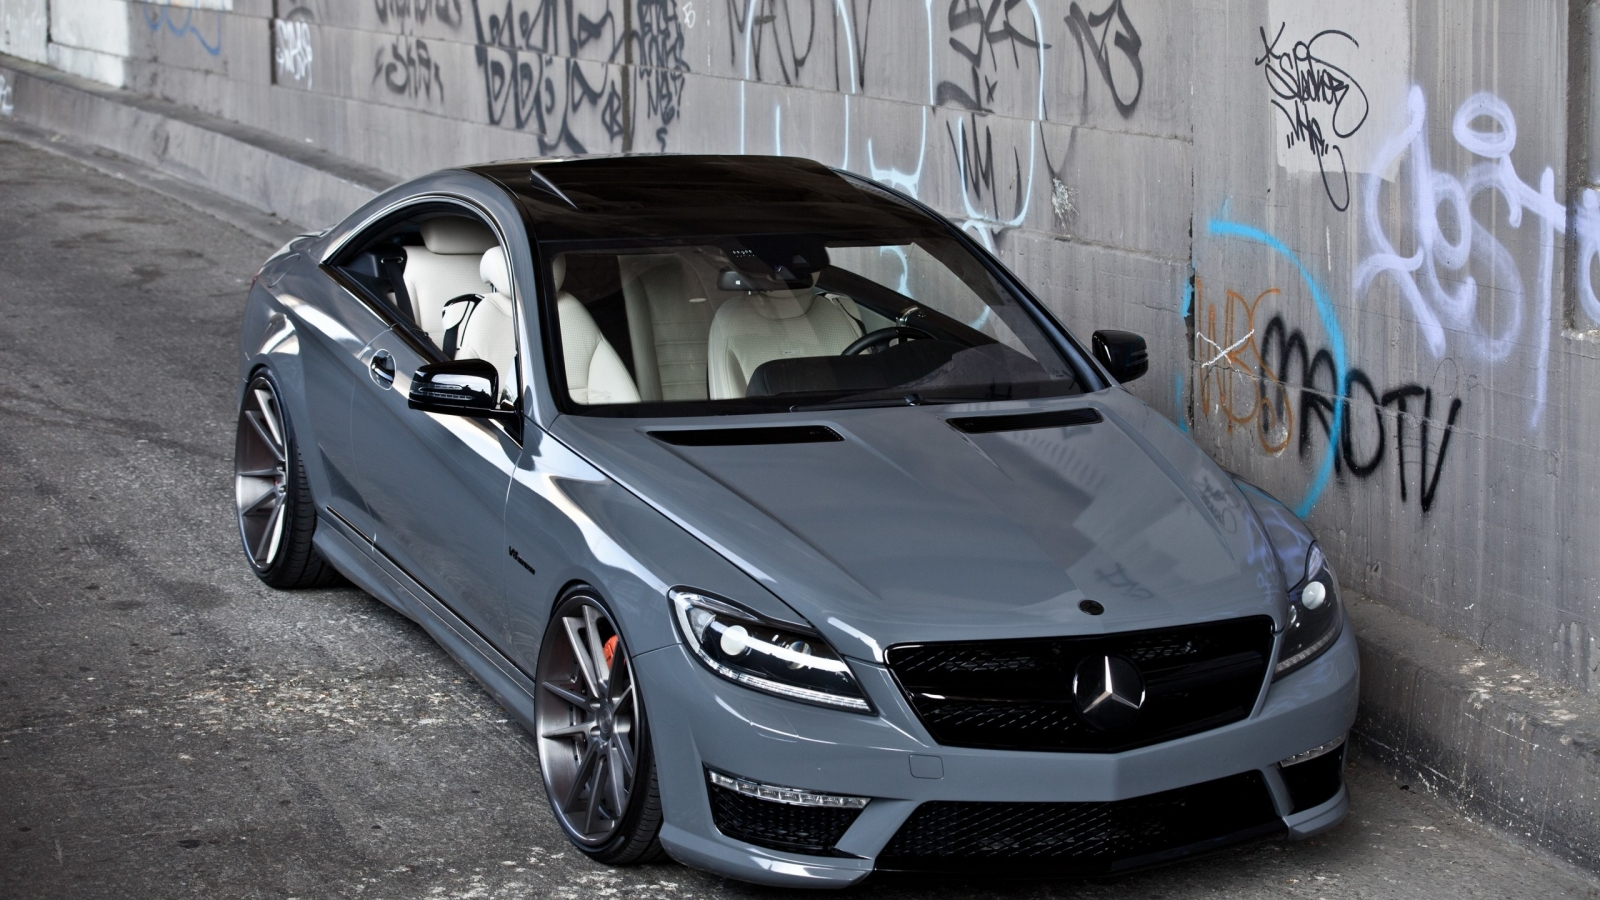 Mercedes CL63 AMG for 1600 x 900 HDTV resolution